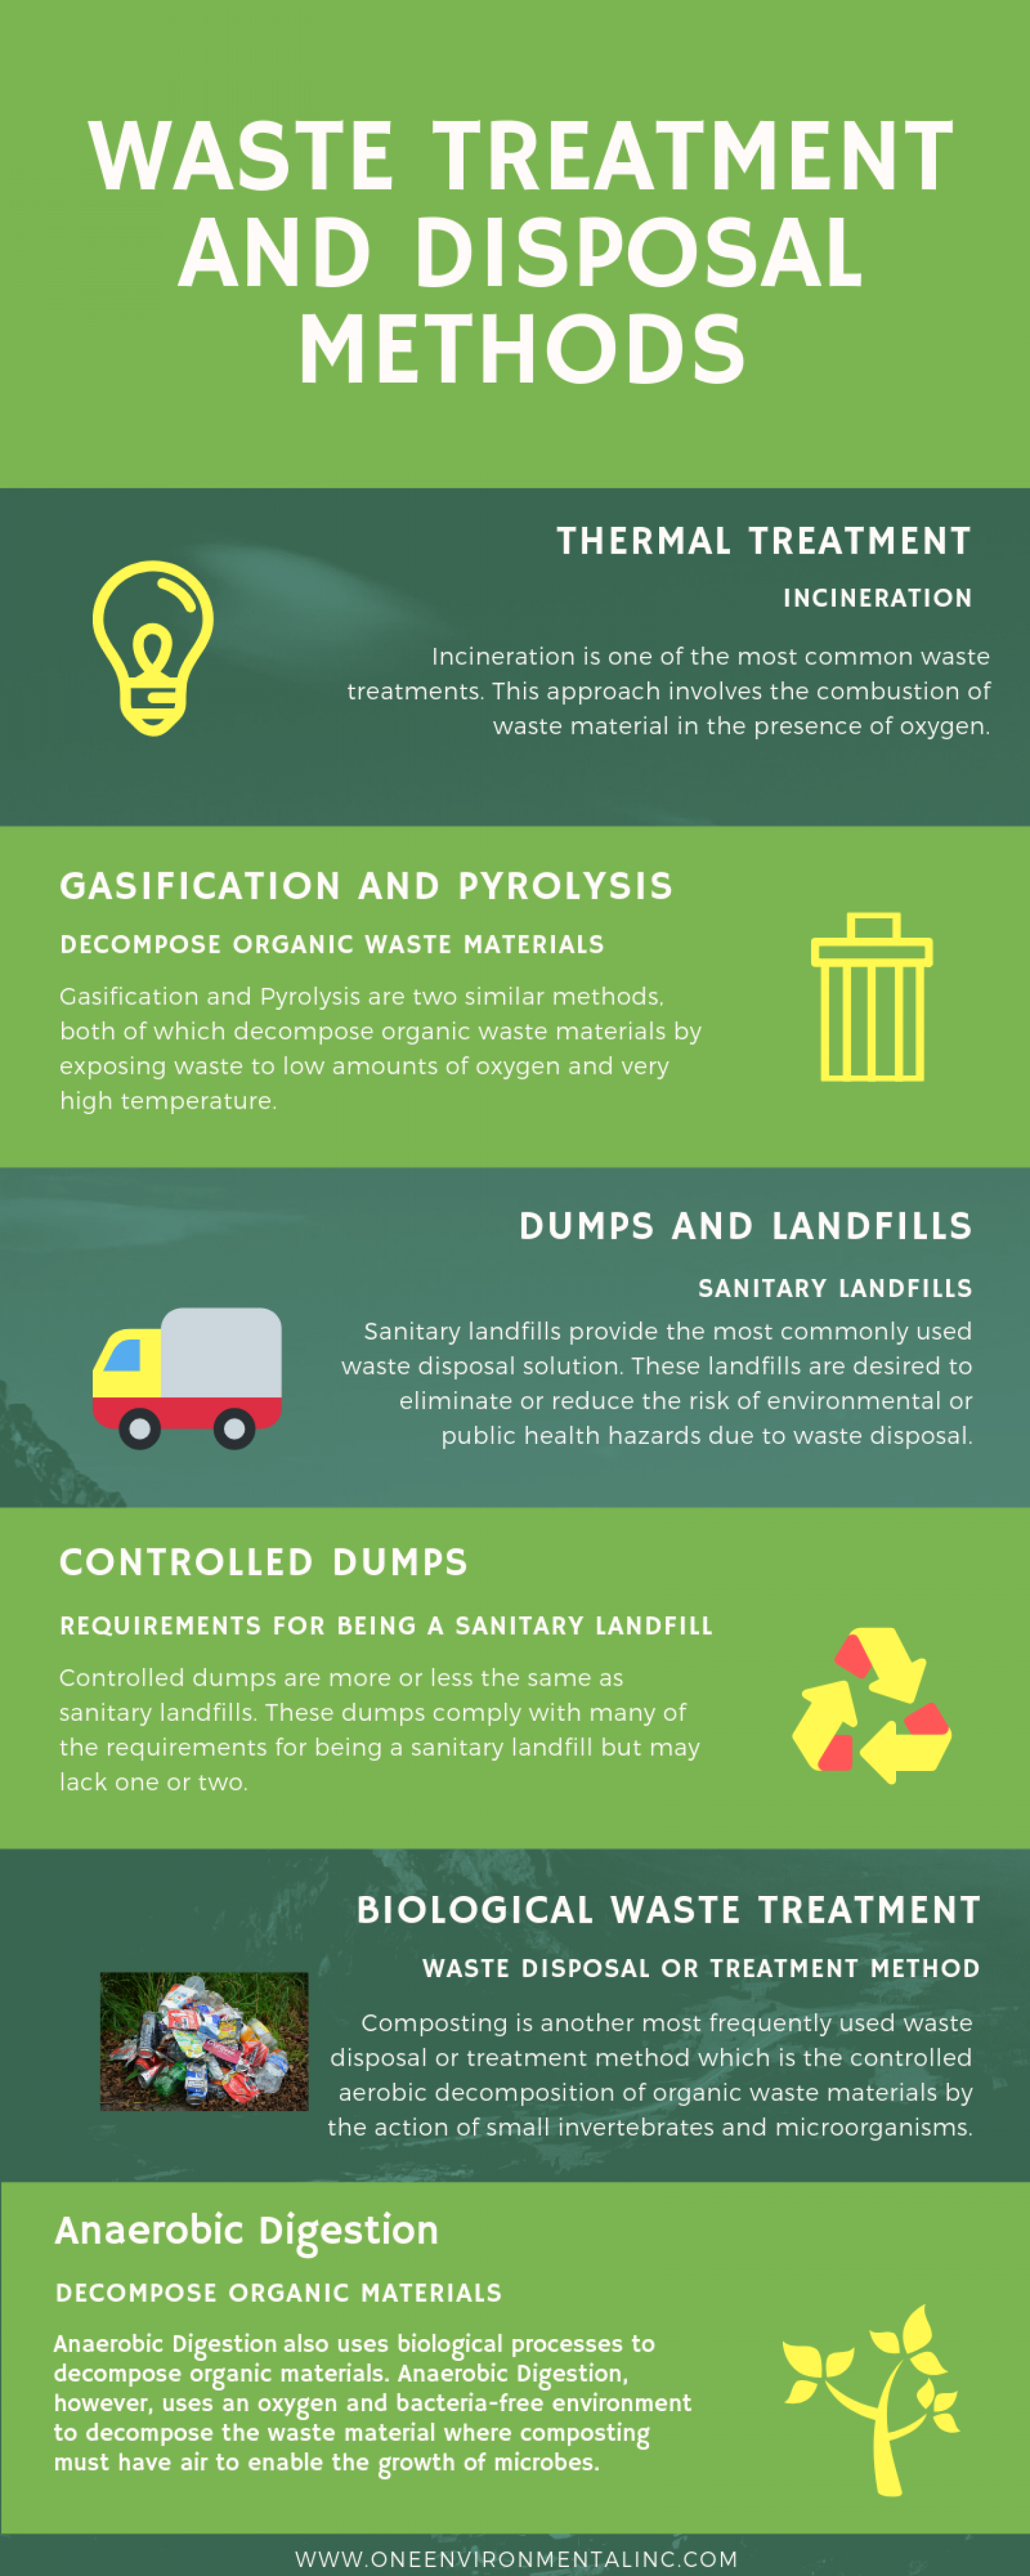 Waste Treatment and Disposal Methods Infographic